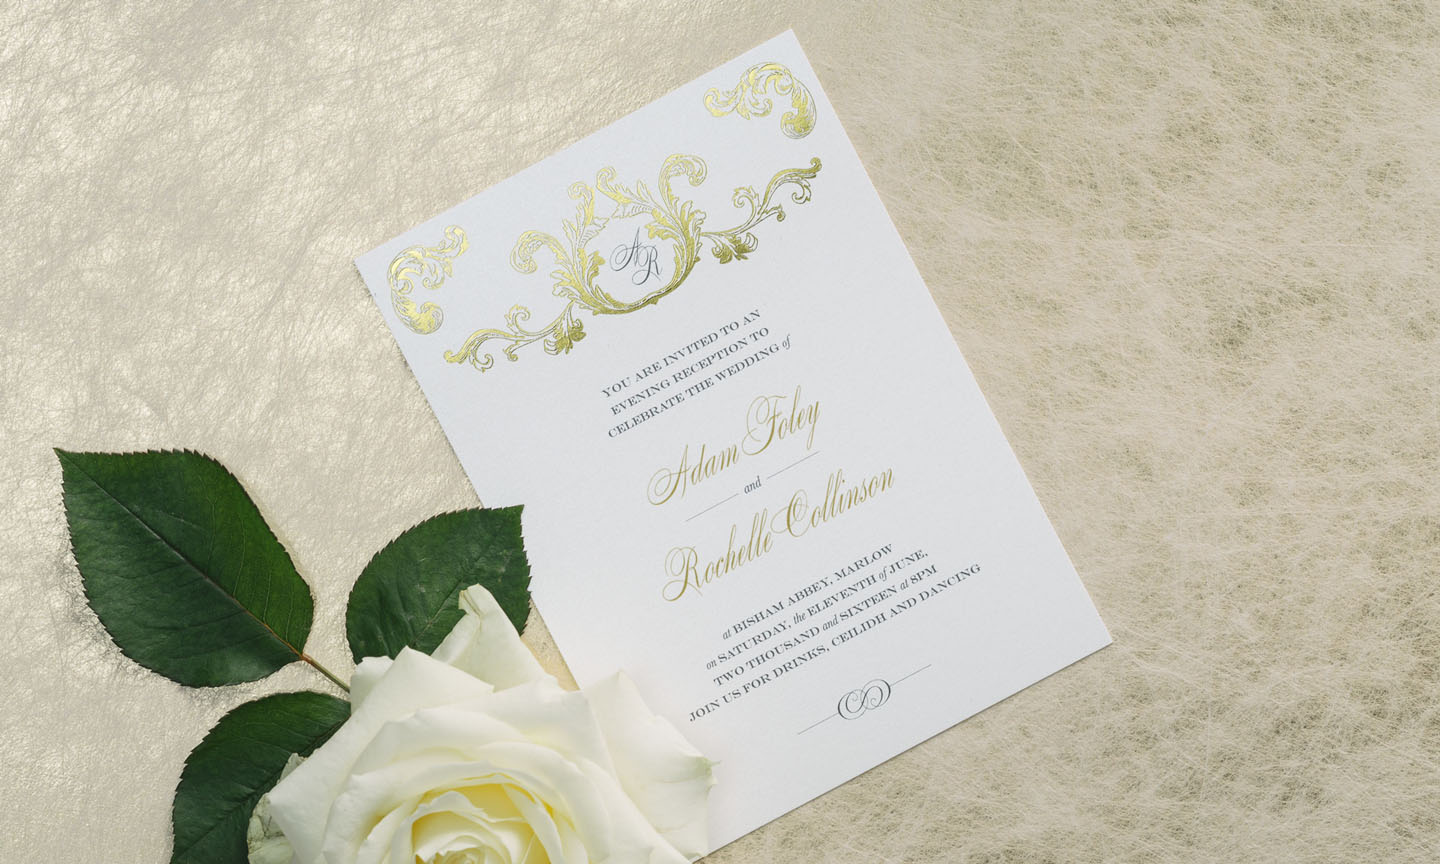 Summer Wedding Ideas - Luxury Wedding Invitations in Gold and White - Foil Invite Company Wedding Stationer